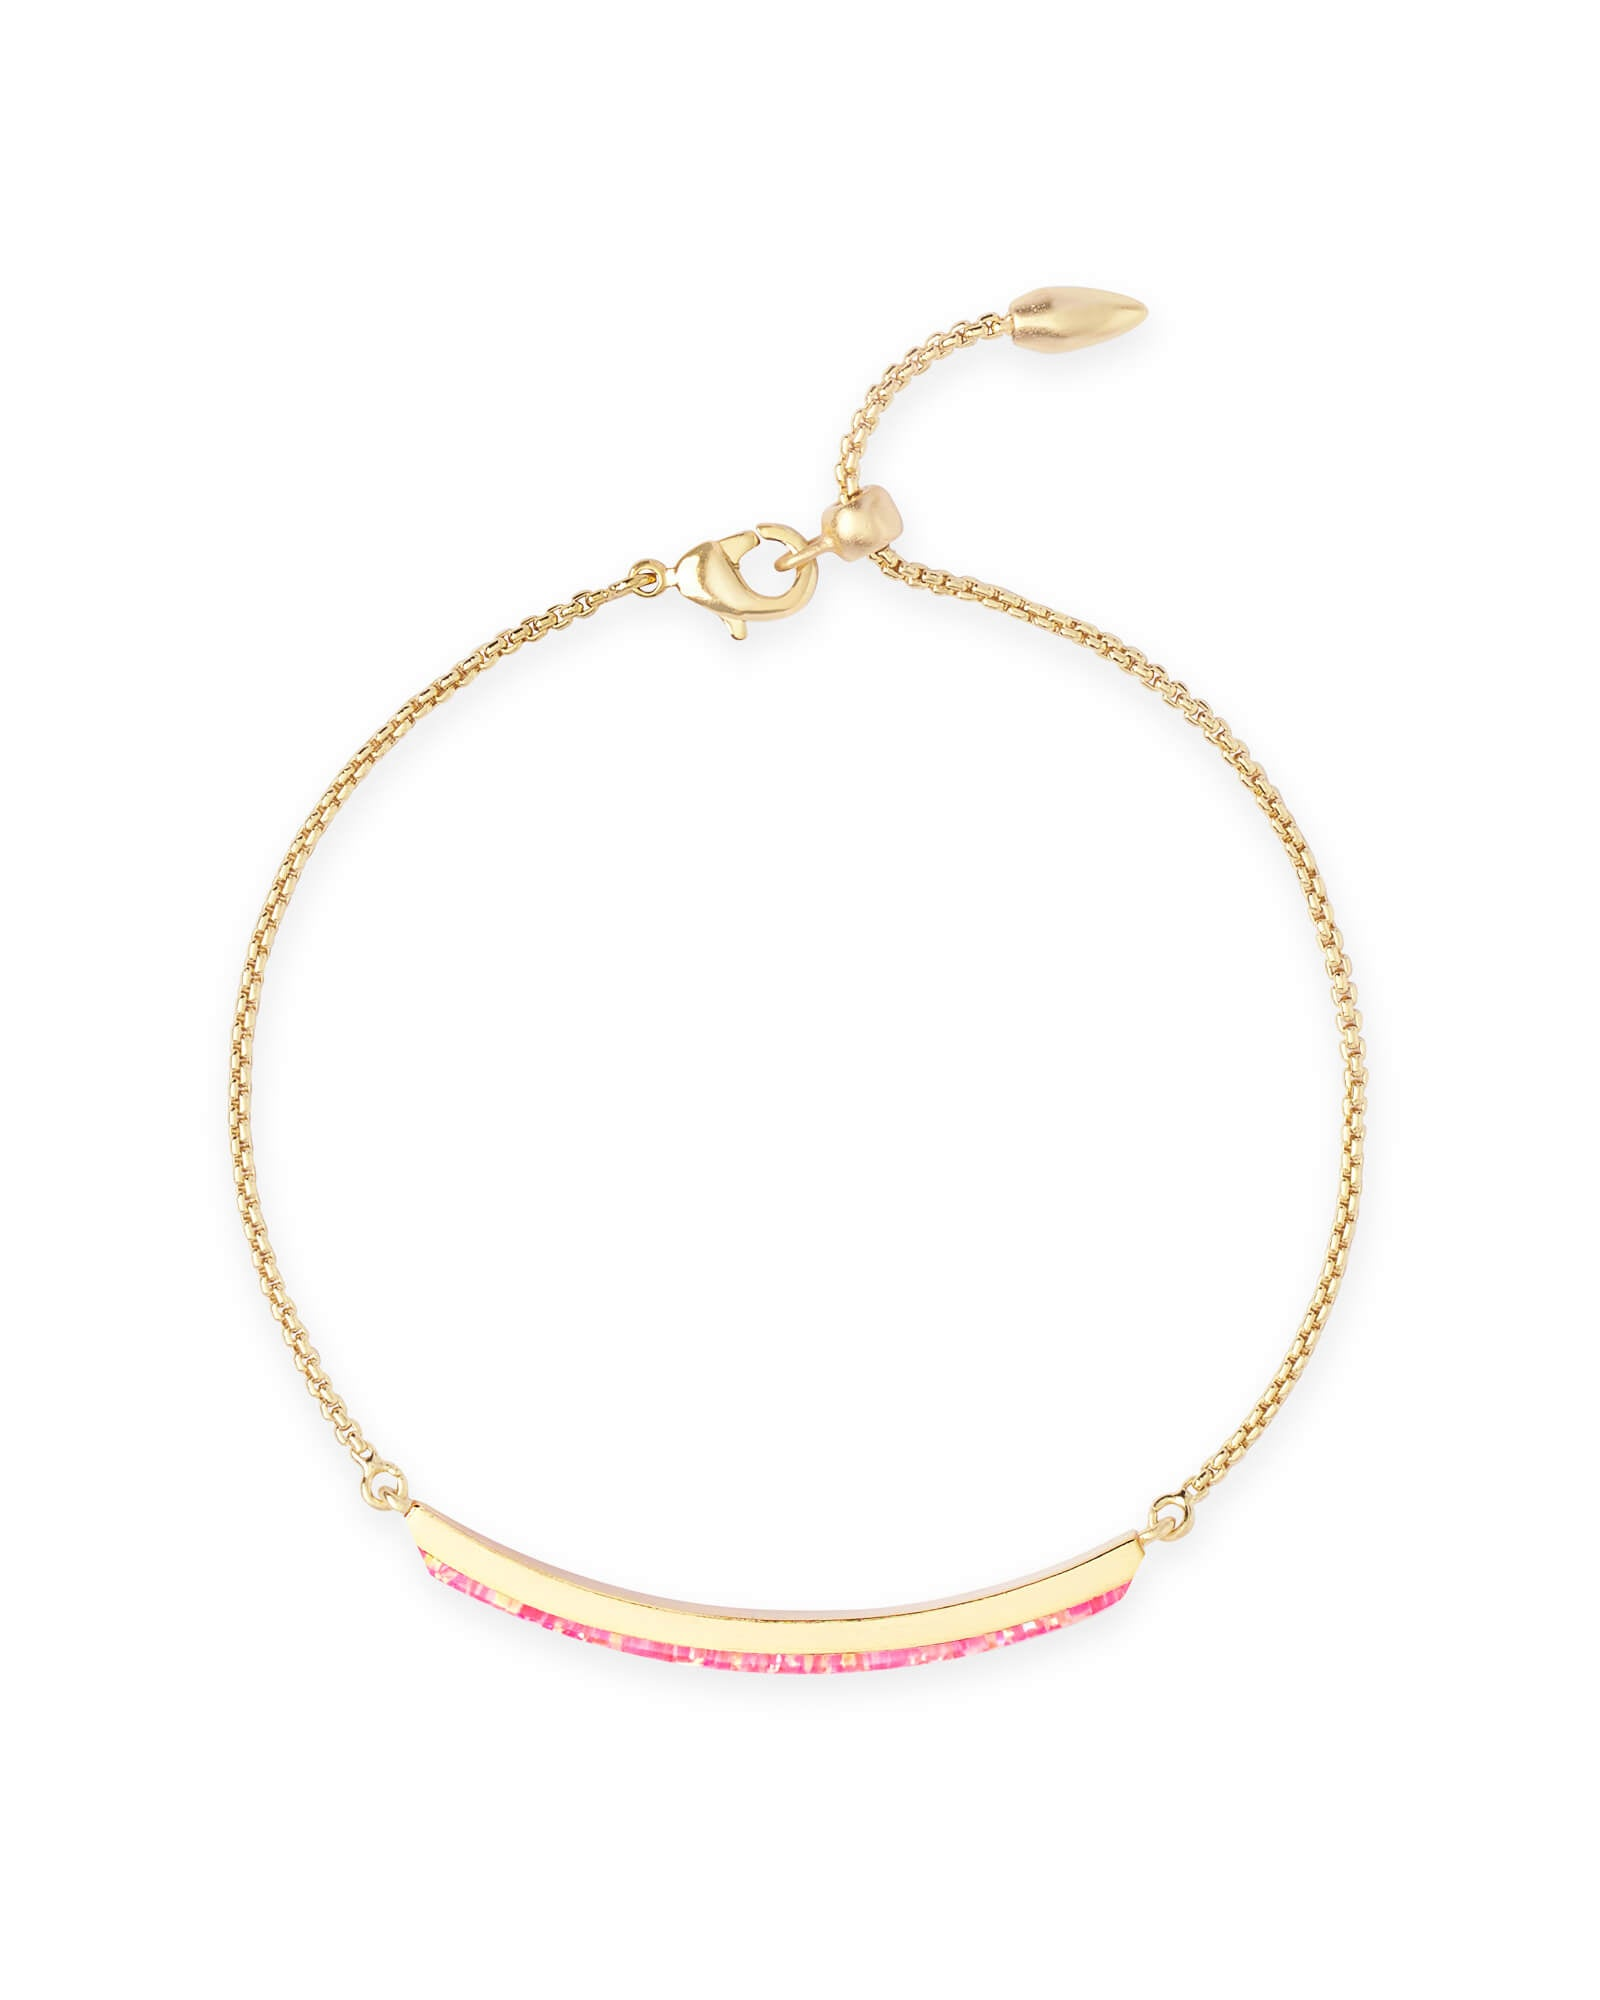 Kendra Scott Eloise Ann Gold Chain Bracelet In Hot Pink Kyocera Opal